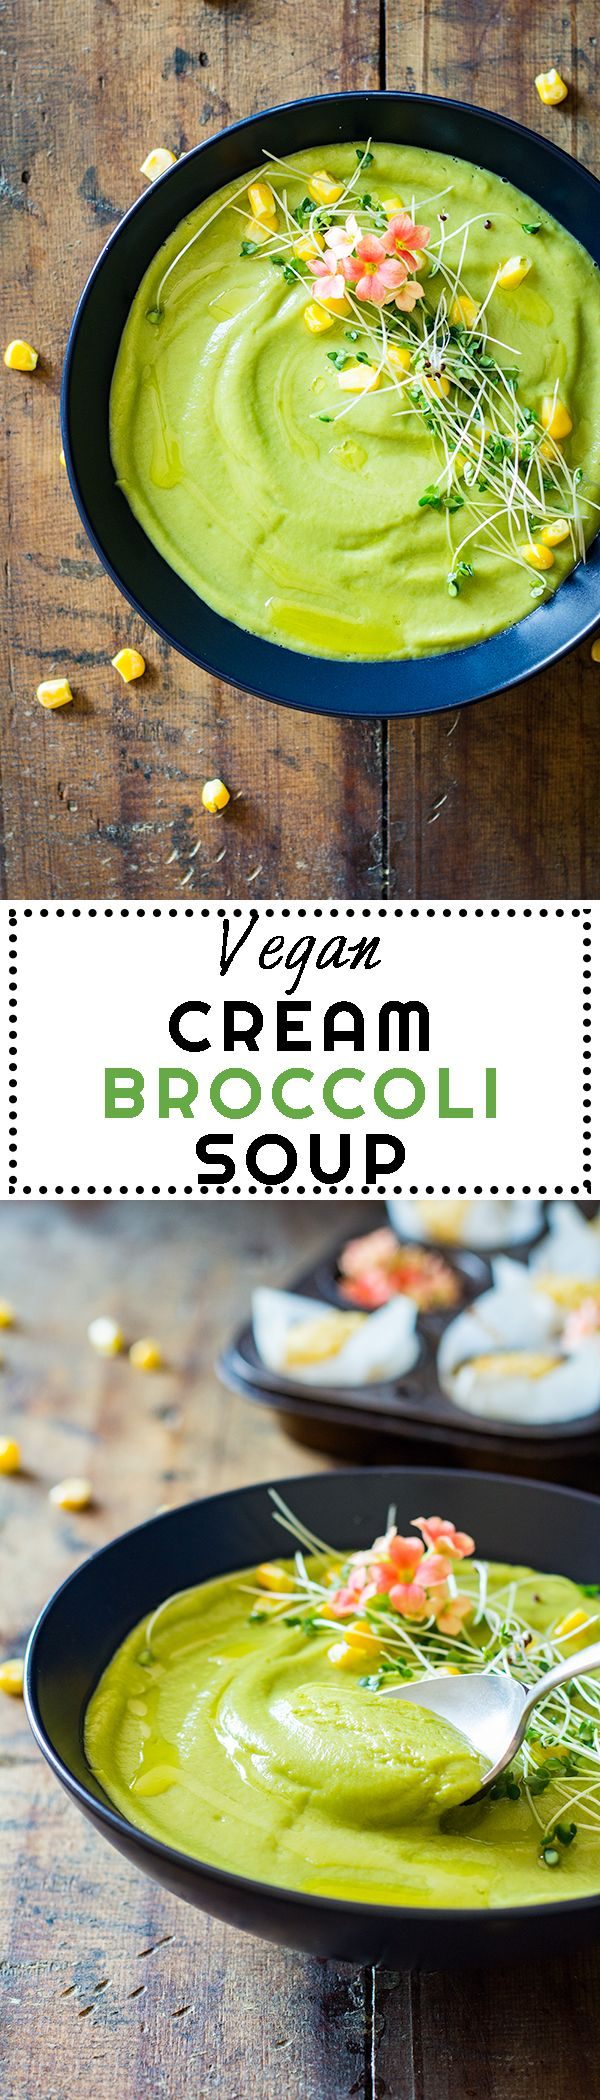 The creamiest nut-free and low fat Vegan Cream Broccoli Soup the world has seen and tasted. Roasted Garlic for taste, cooked broccoli for color and nutrition, vegetable broth for warmth and corn kernels for fun.